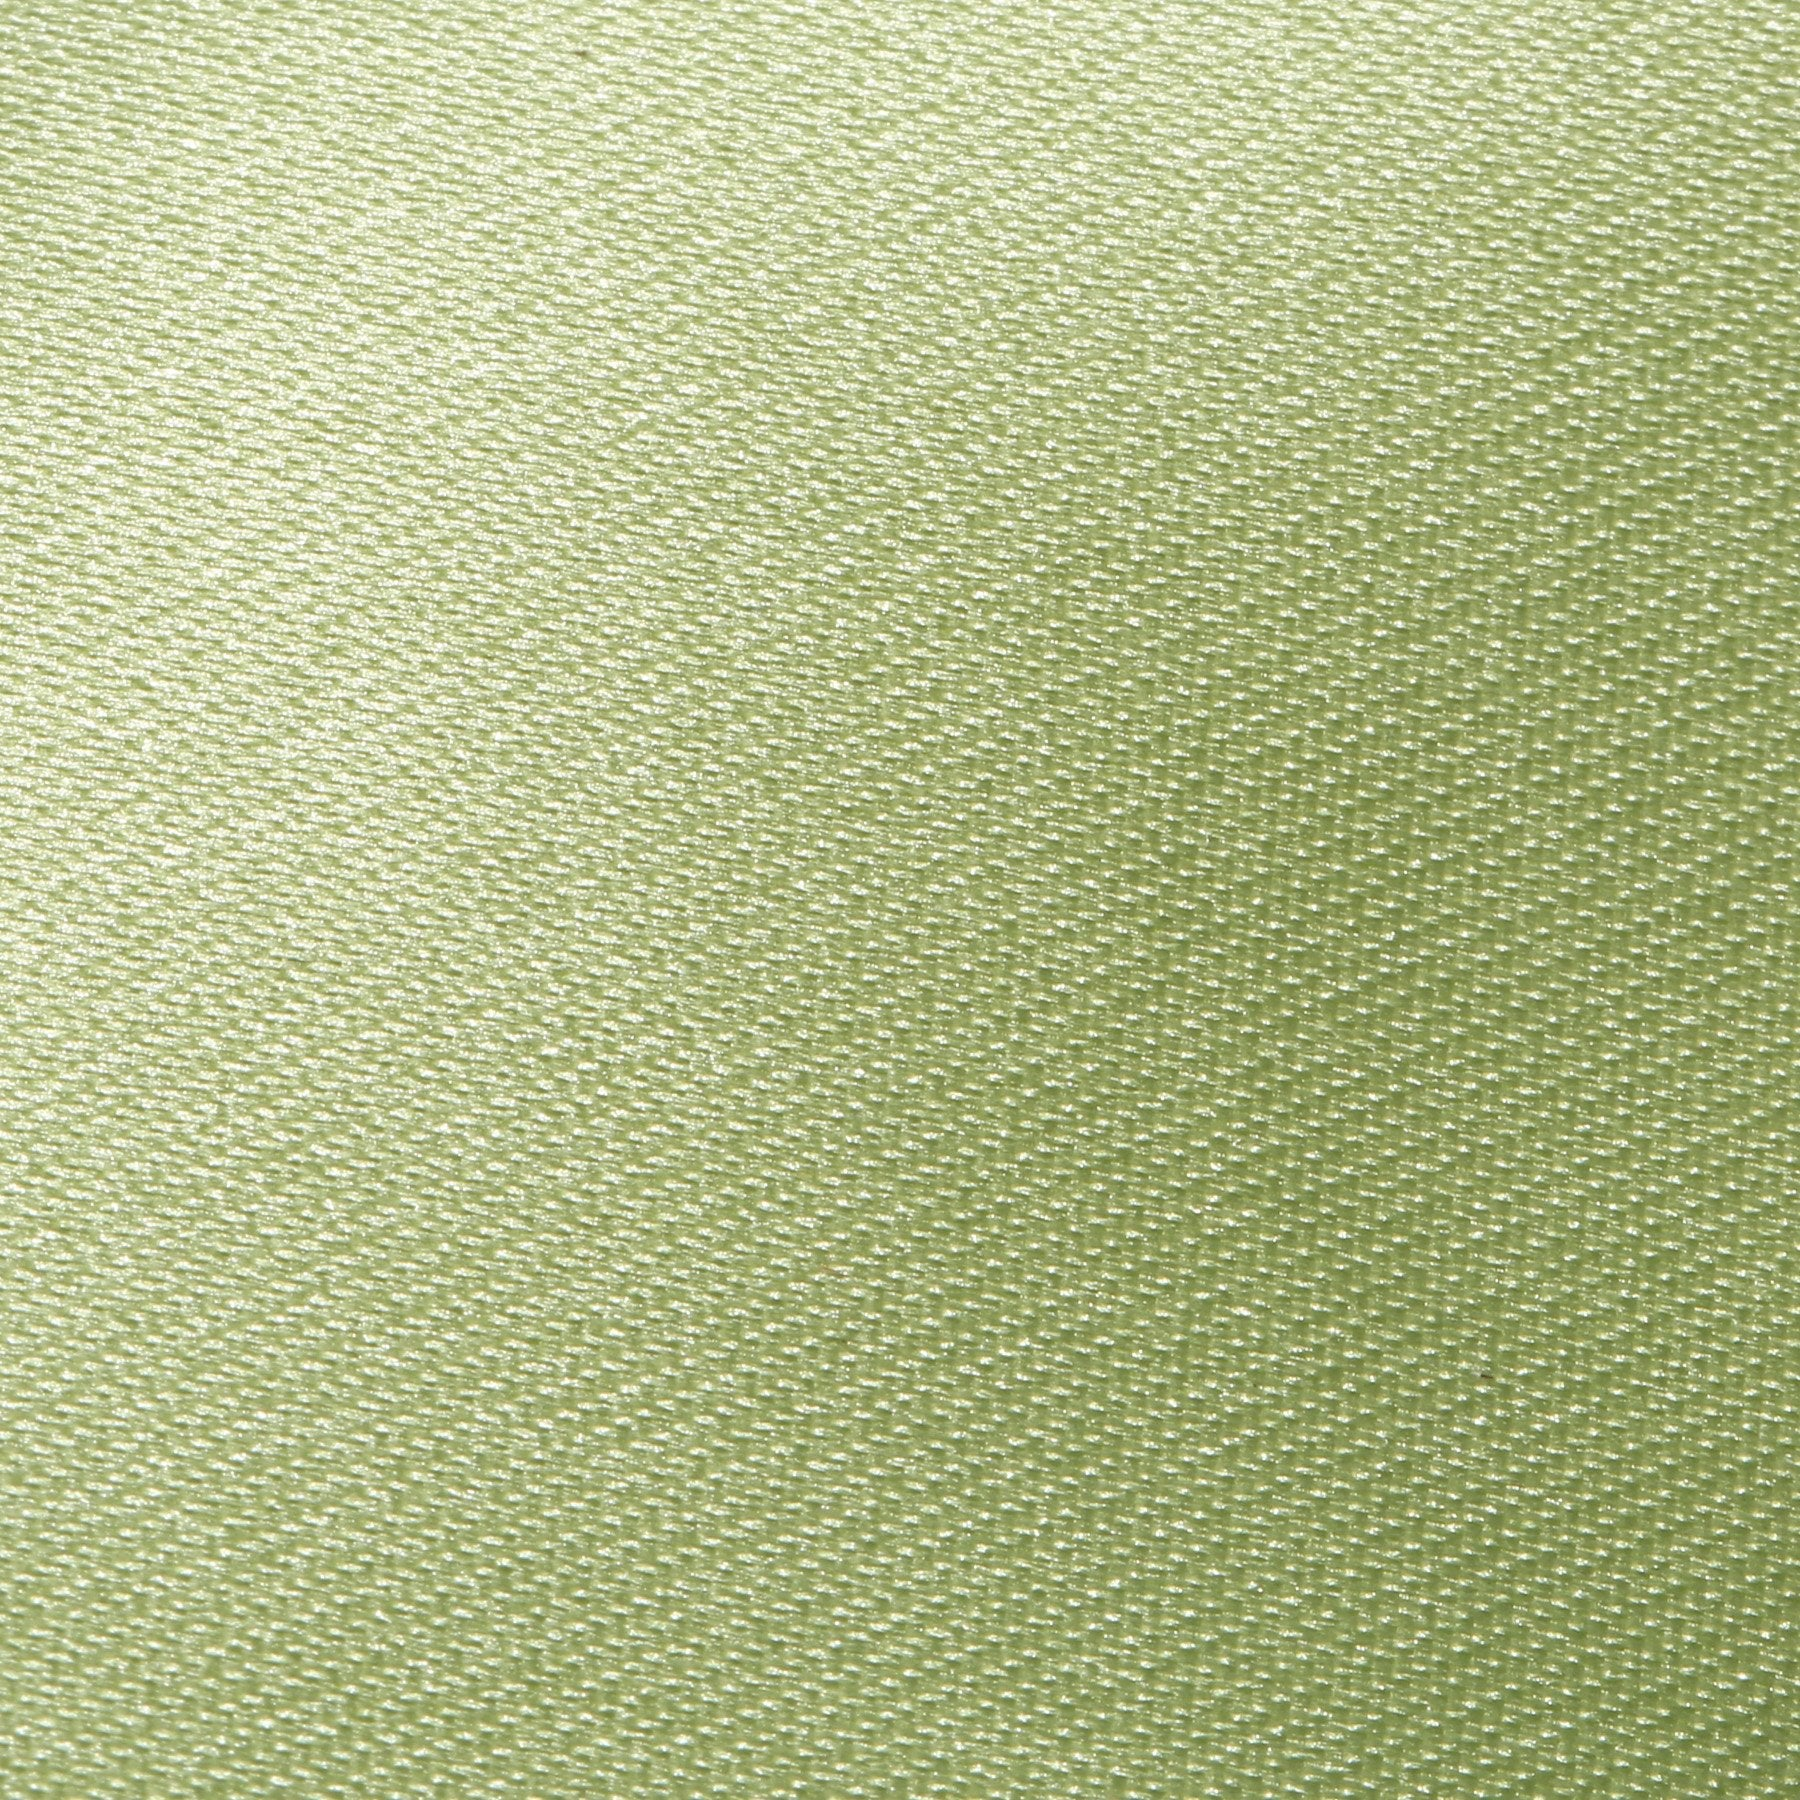 Folkespeare Avocado Satin Classic Tie Fabric